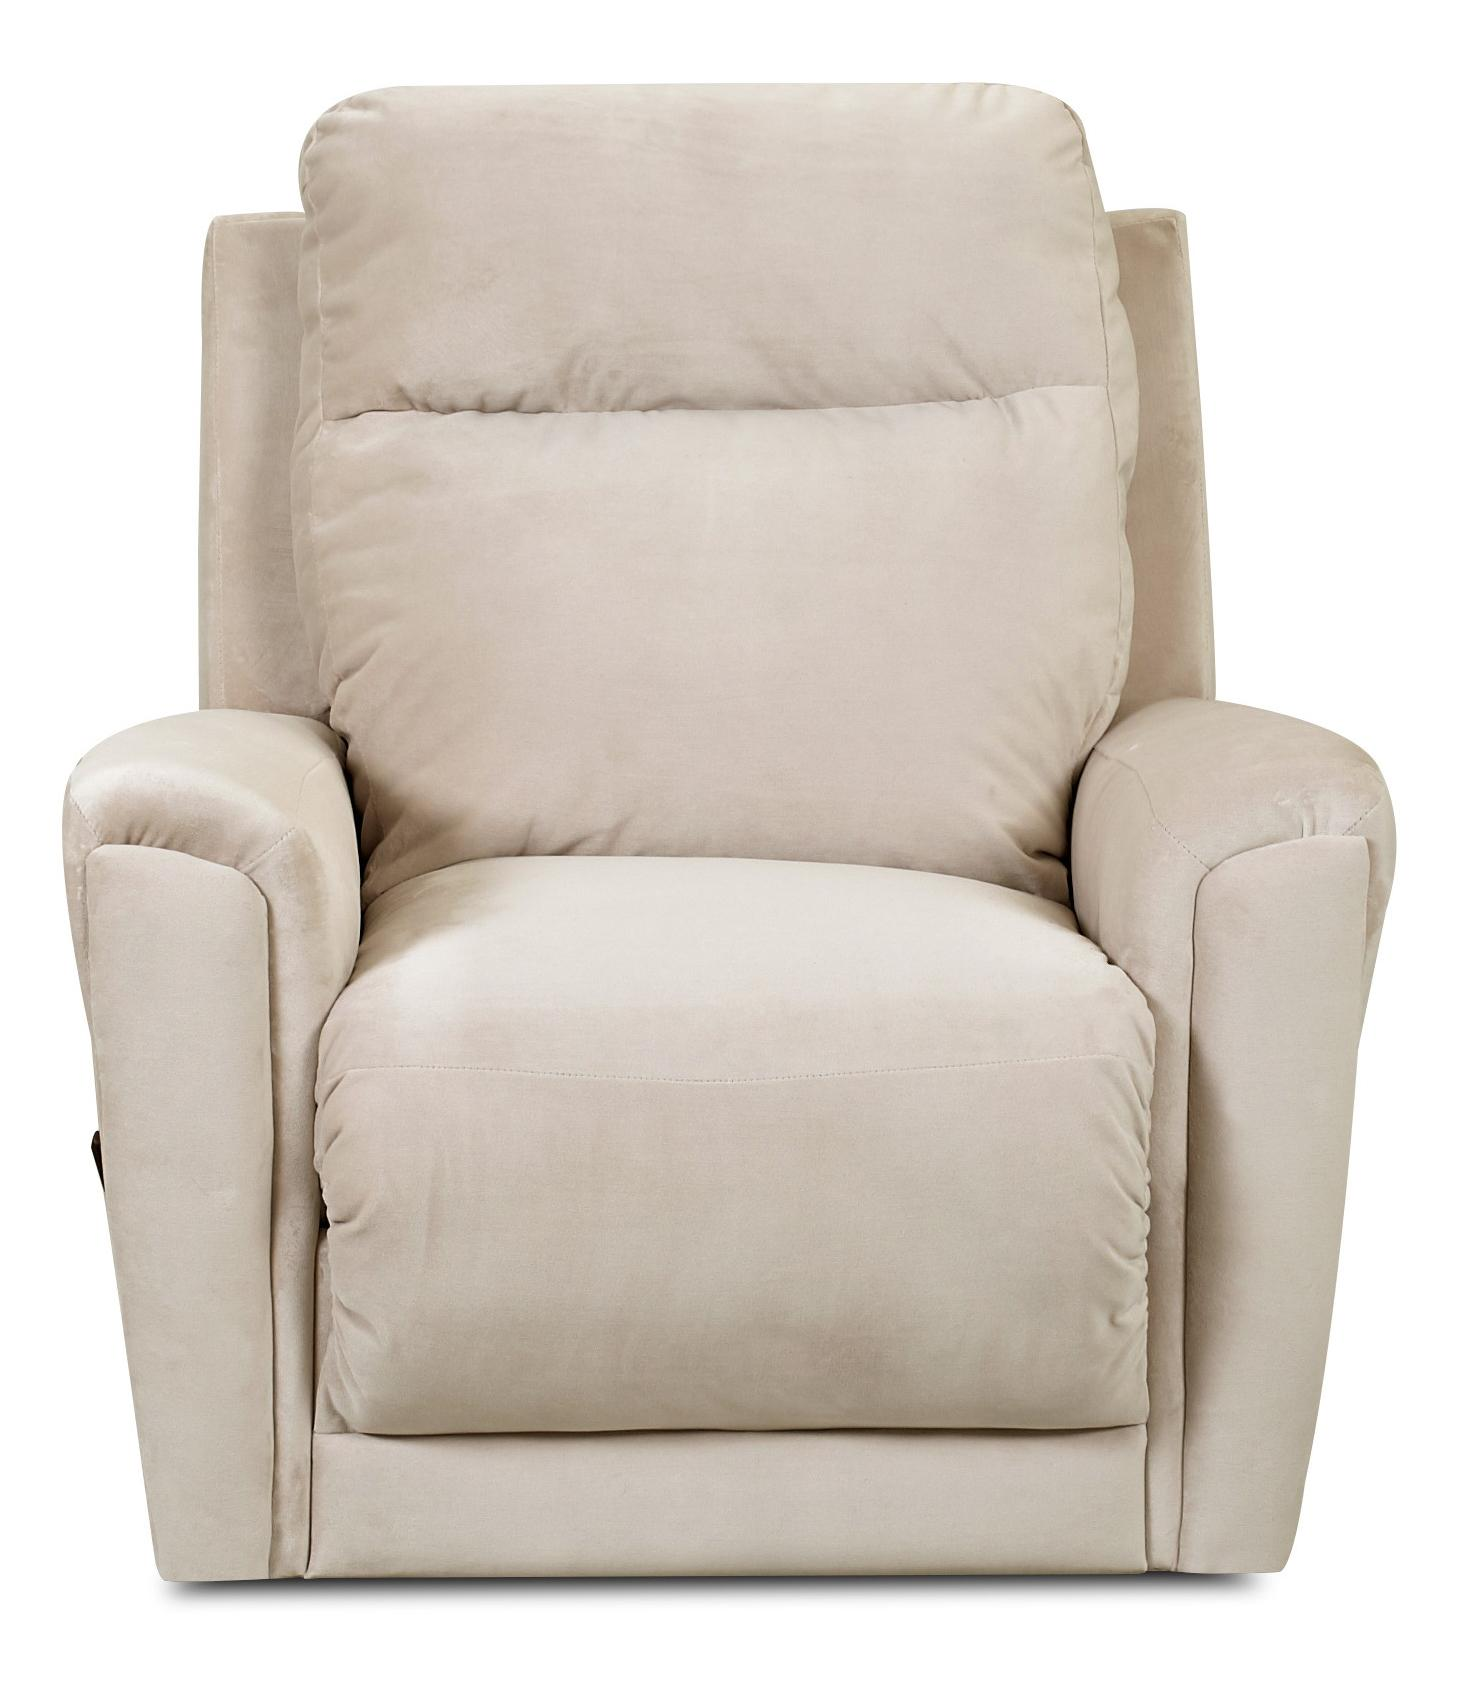 Transitional Swivel Rocking Reclining Chair